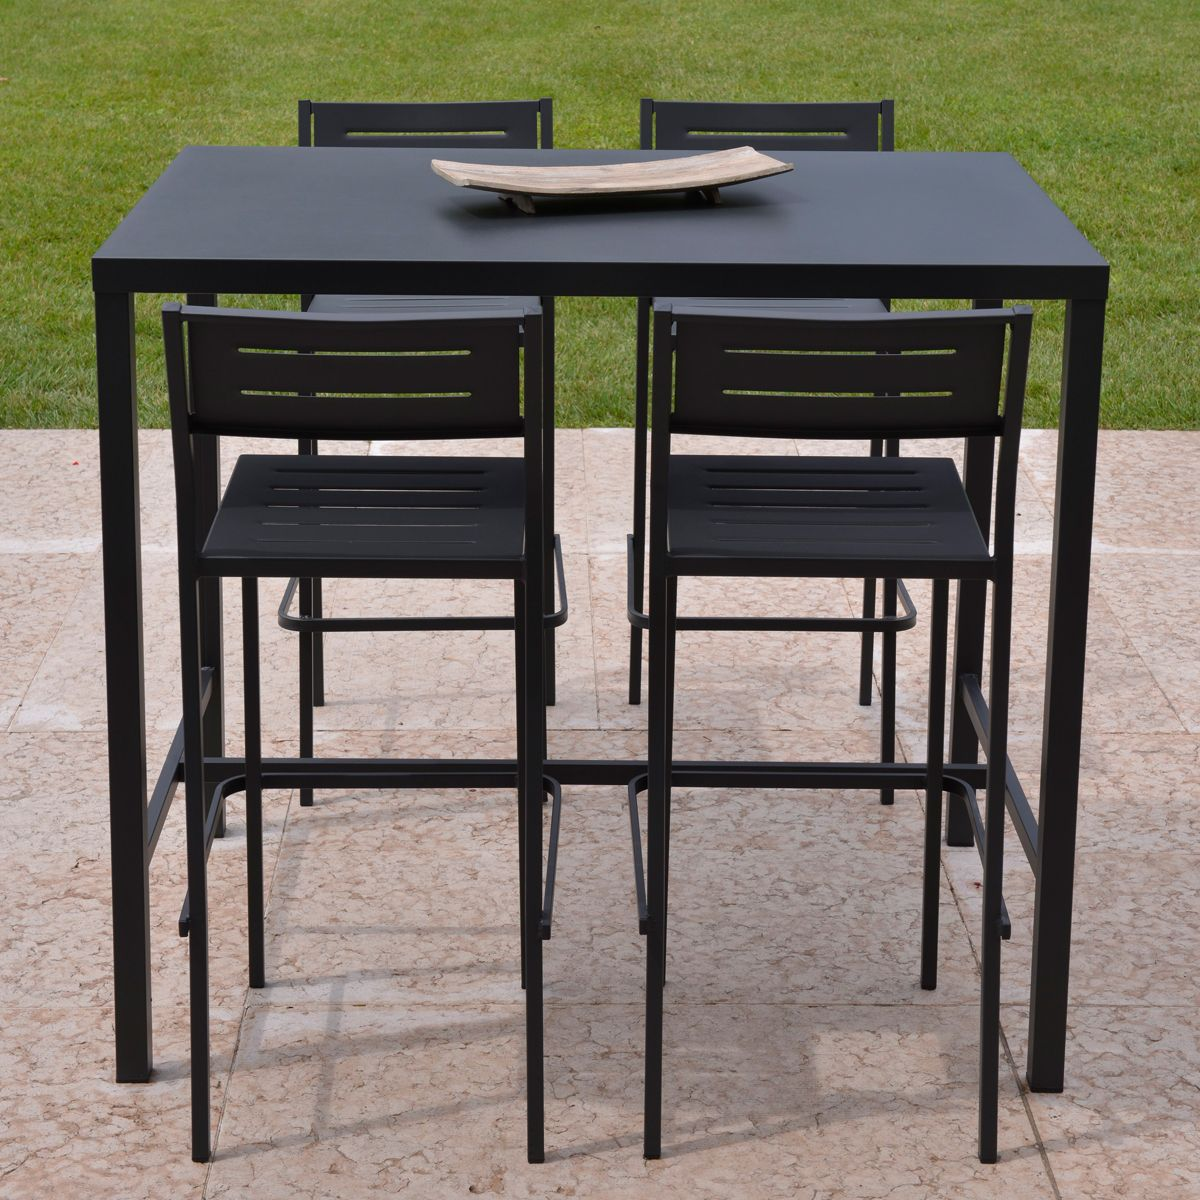 Ensemble de jardin table haute tabouret dorio rd italia for Creer une table de jardin